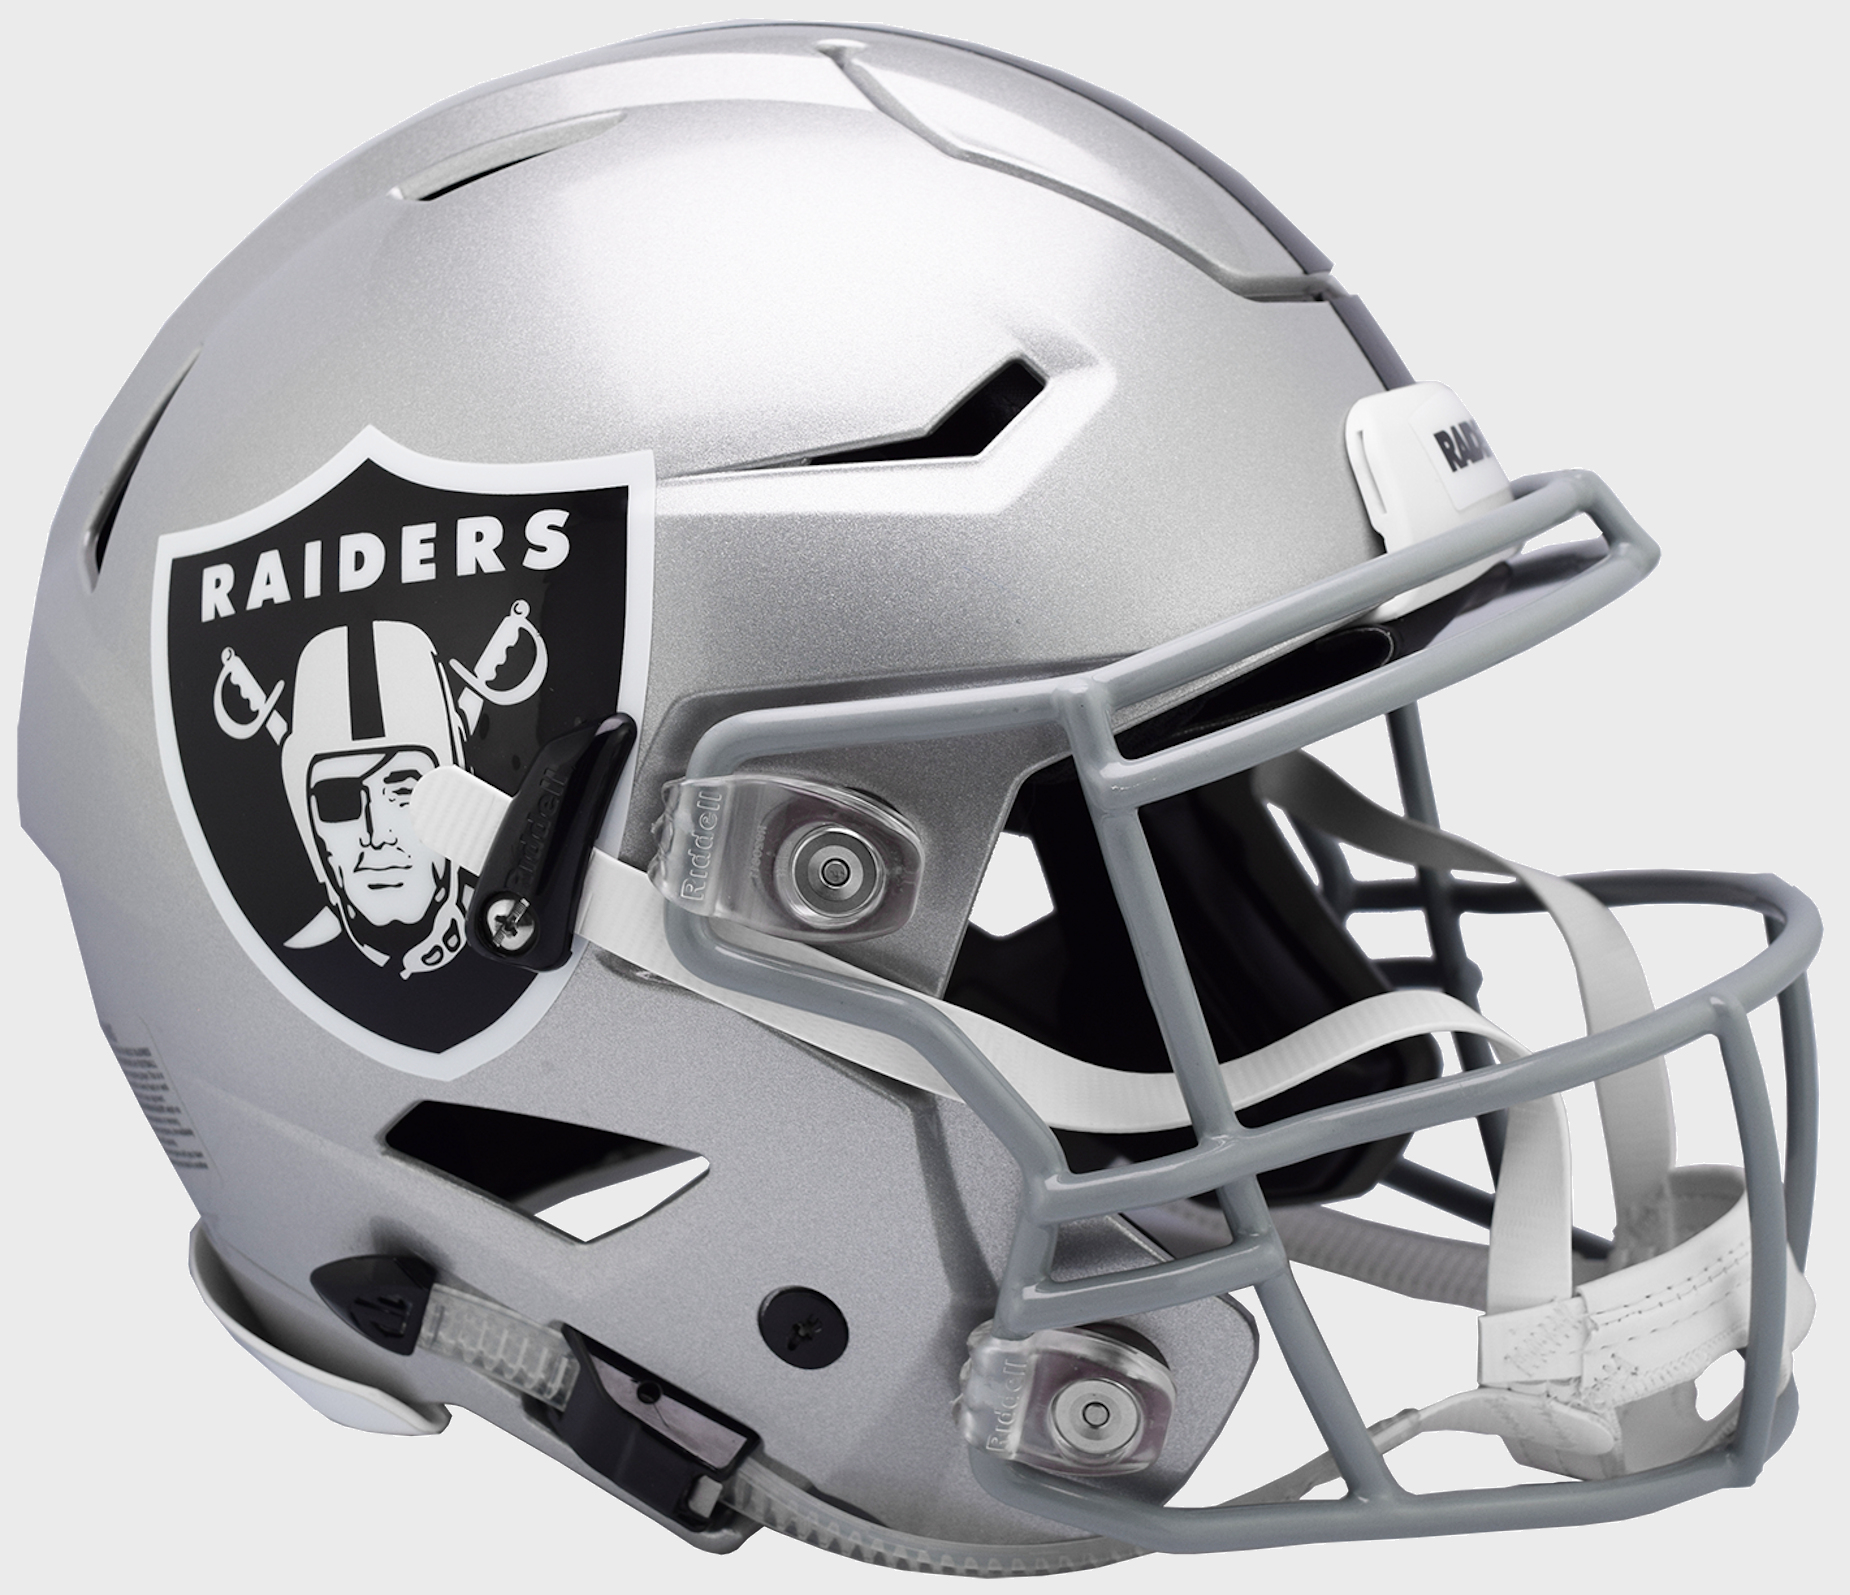 Las Vegas Raiders SpeedFlex Football Helmet